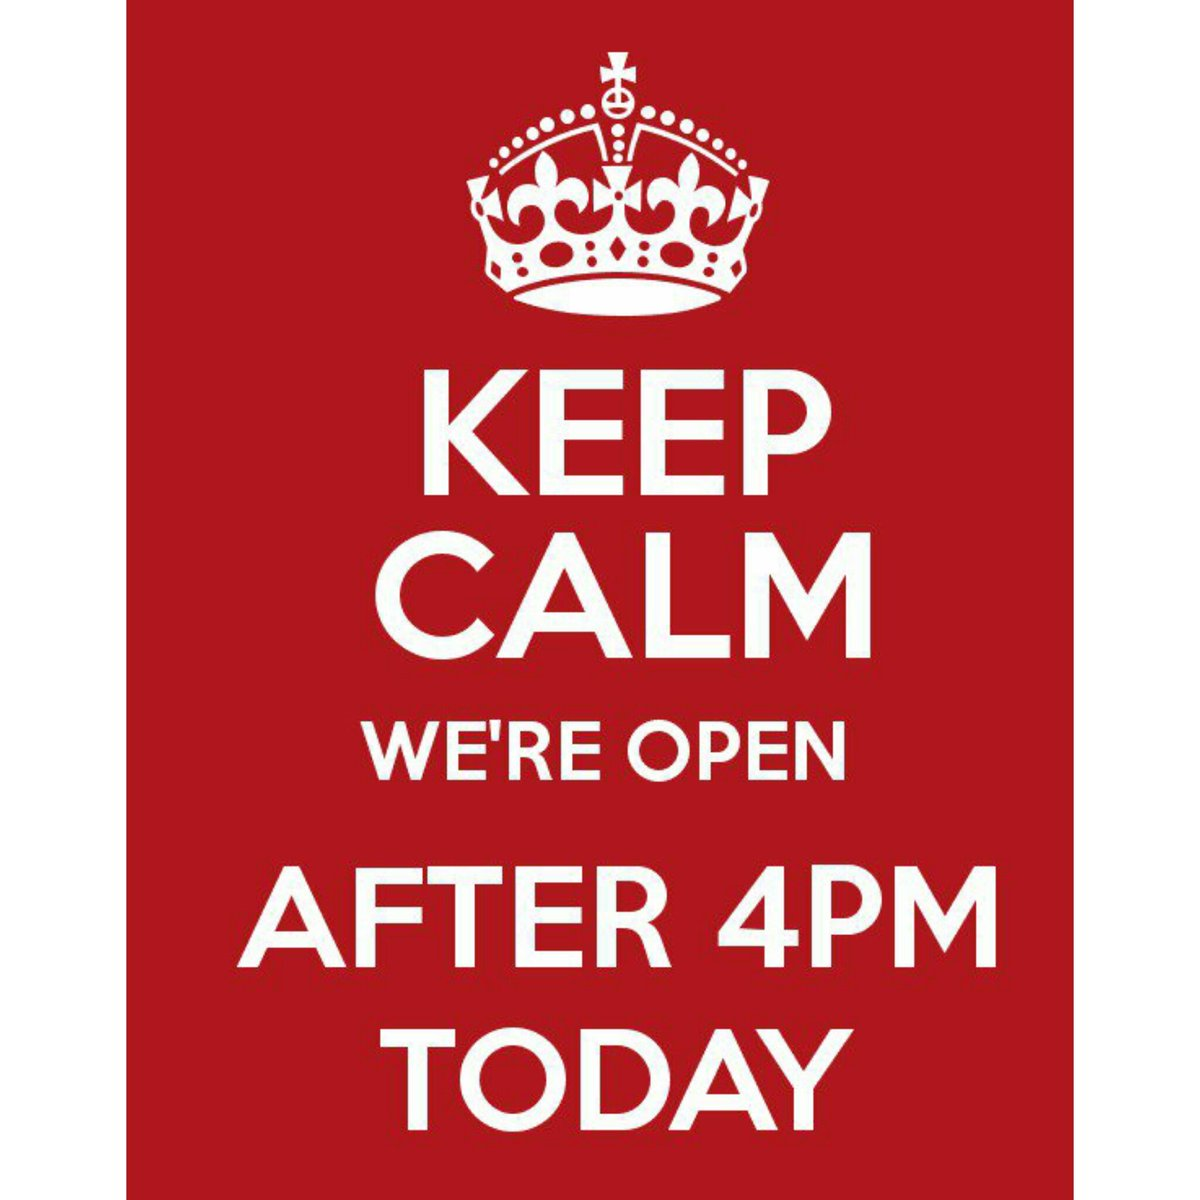 Amigo Home Improvements On Twitter Keep Calm We Are Open Today